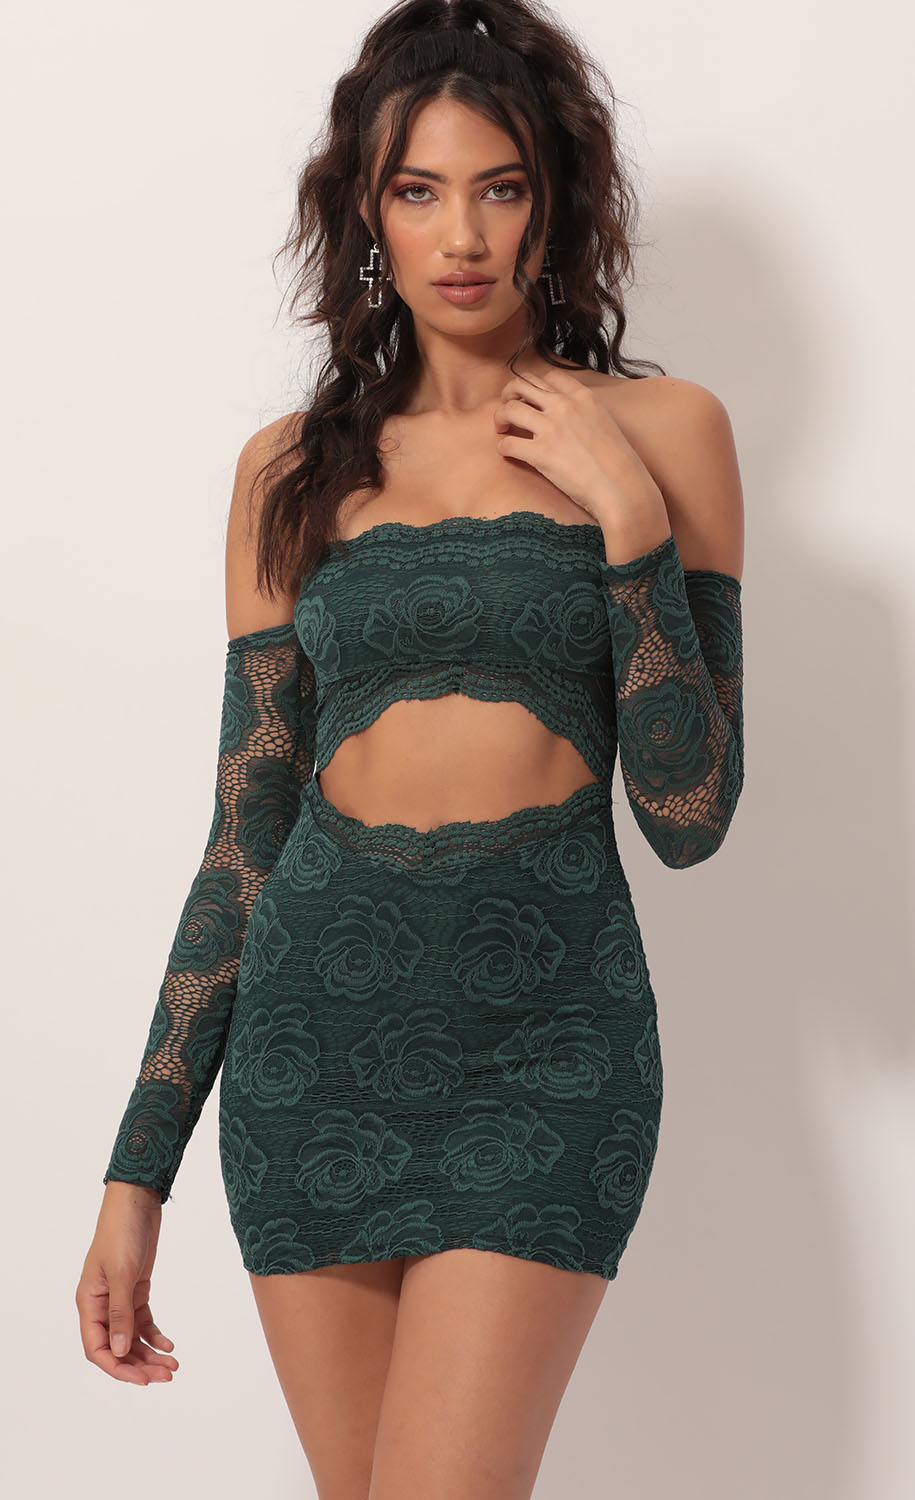 Maybella Strapless Lace Dress in Green